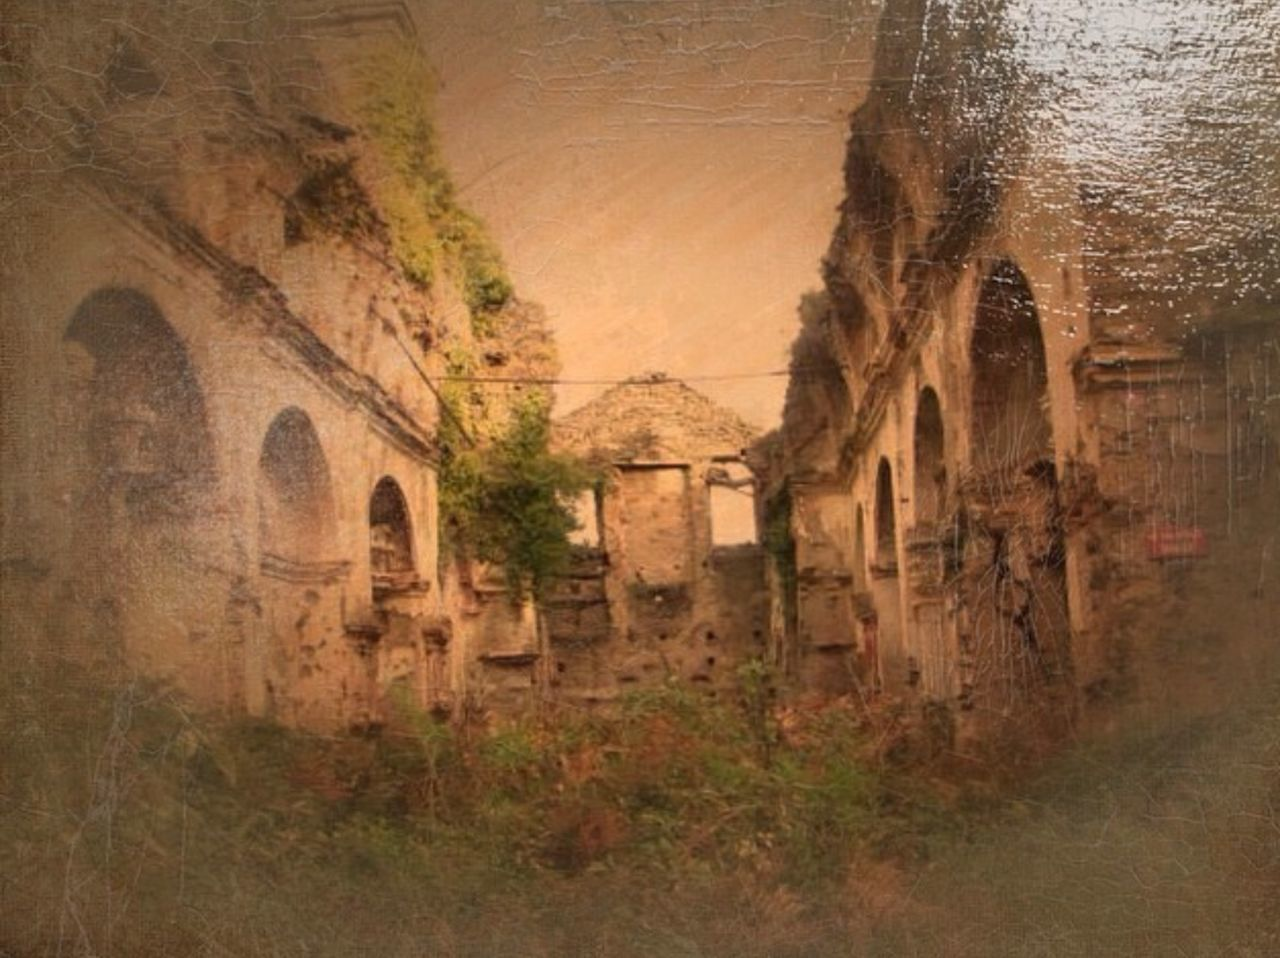 architecture, history, old, built structure, old ruin, the past, ancient, no people, ancient civilization, building exterior, day, indoors